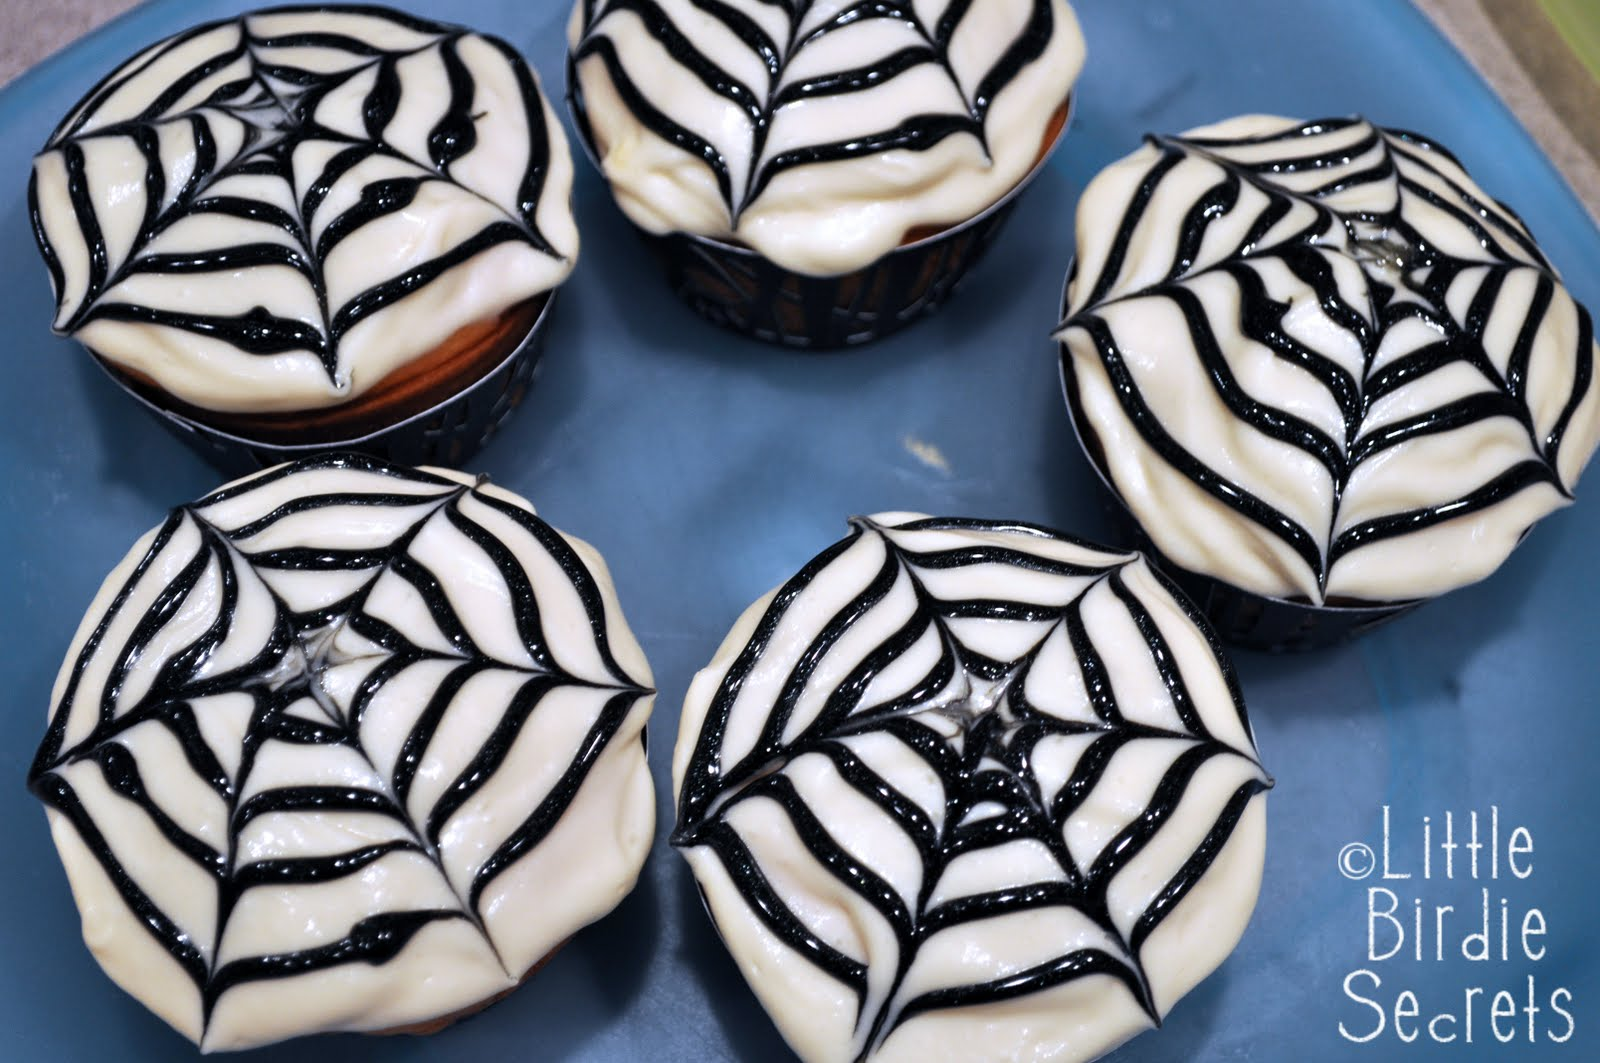 How to Decorate Spider Web Cupcakes. So decorating these Halloween spider web cupcakes are so fun and easy to make and just a little messy, but in a good way! Once you've frosted your cupcakes, you heat a marshmallow a few seconds, then comes the messy part.